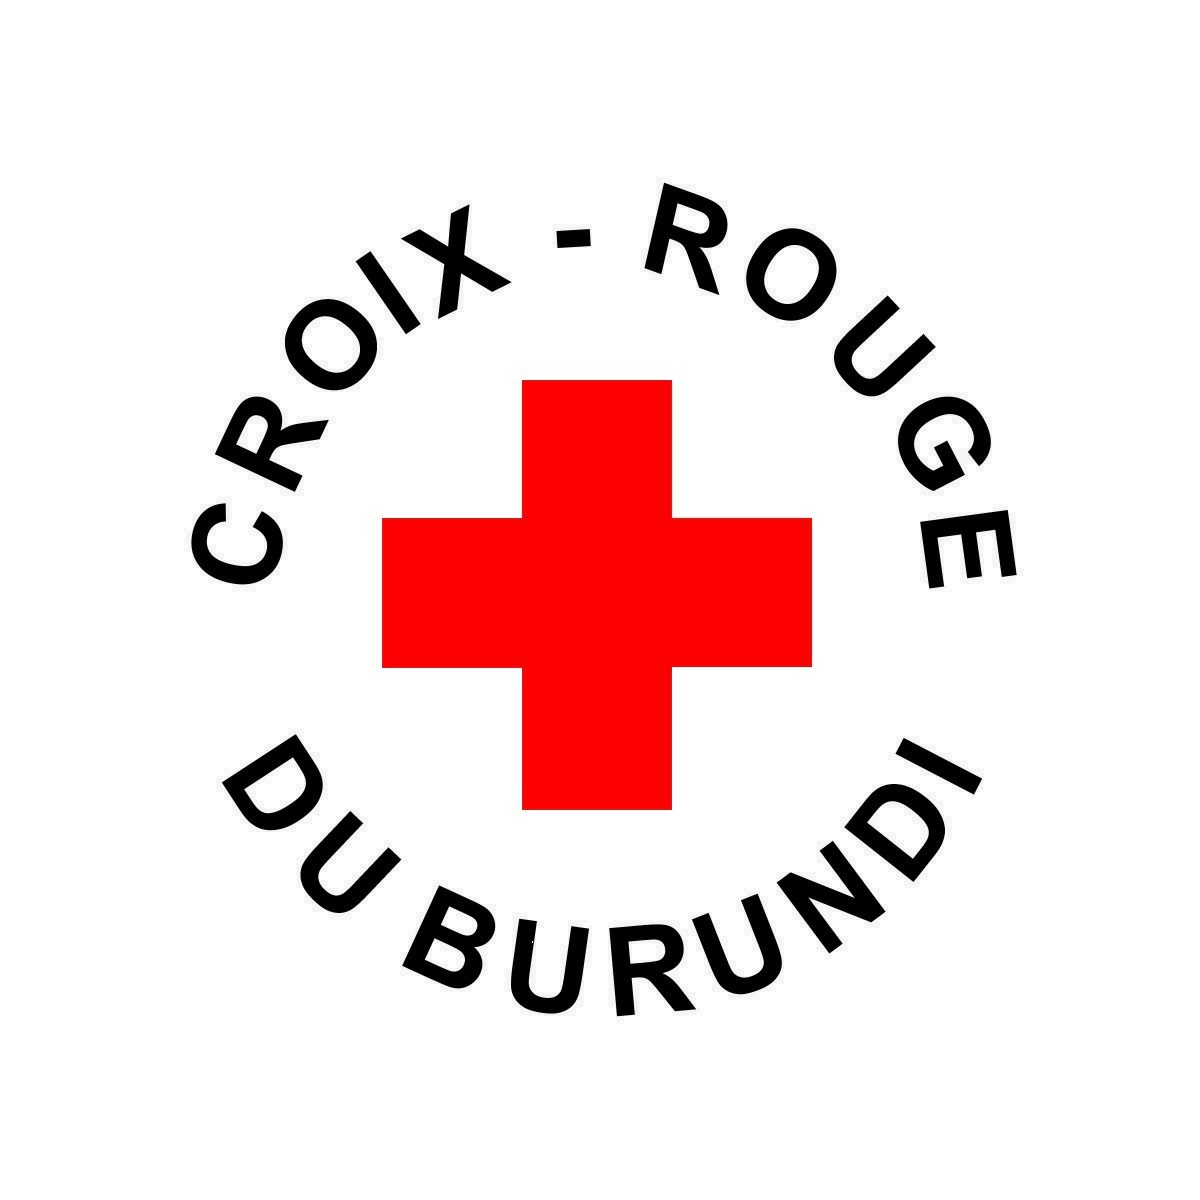 Burundi Red Cross